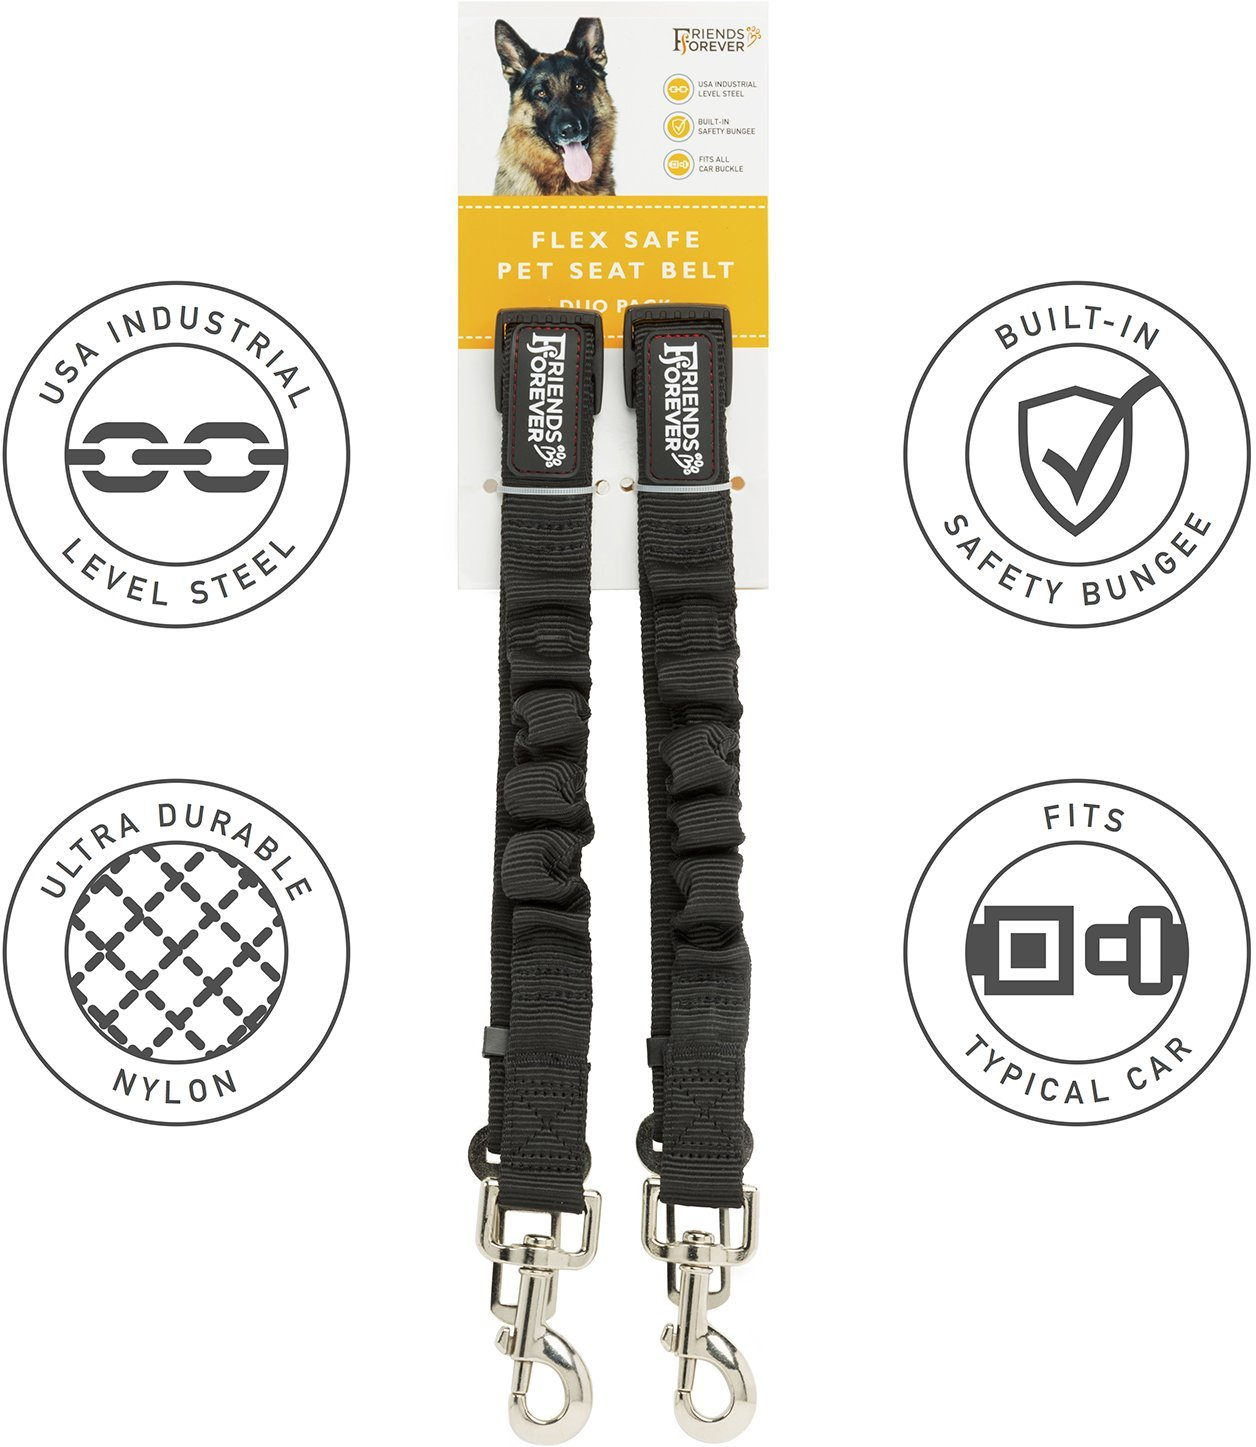 Friends Forever 2-Pack Adjustable Bungee Elastic Black Nylon Pet Seat-belt & Car Lead Tether for Dogs and Cats